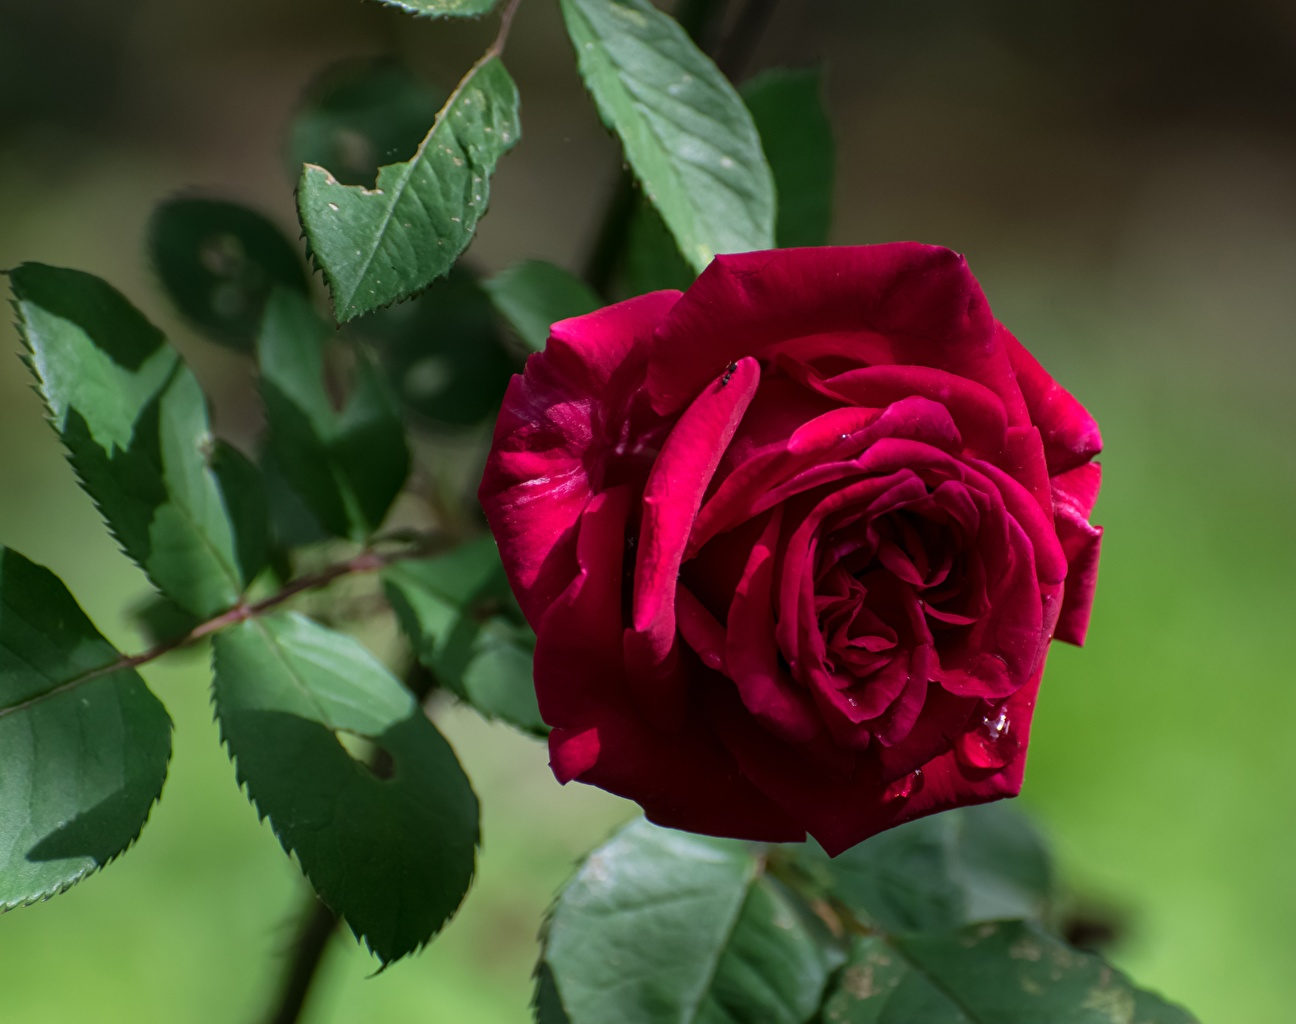 Wallpaper Foliage Bokeh Red Roses Flowers Closeup Leaf blurred background rose flower